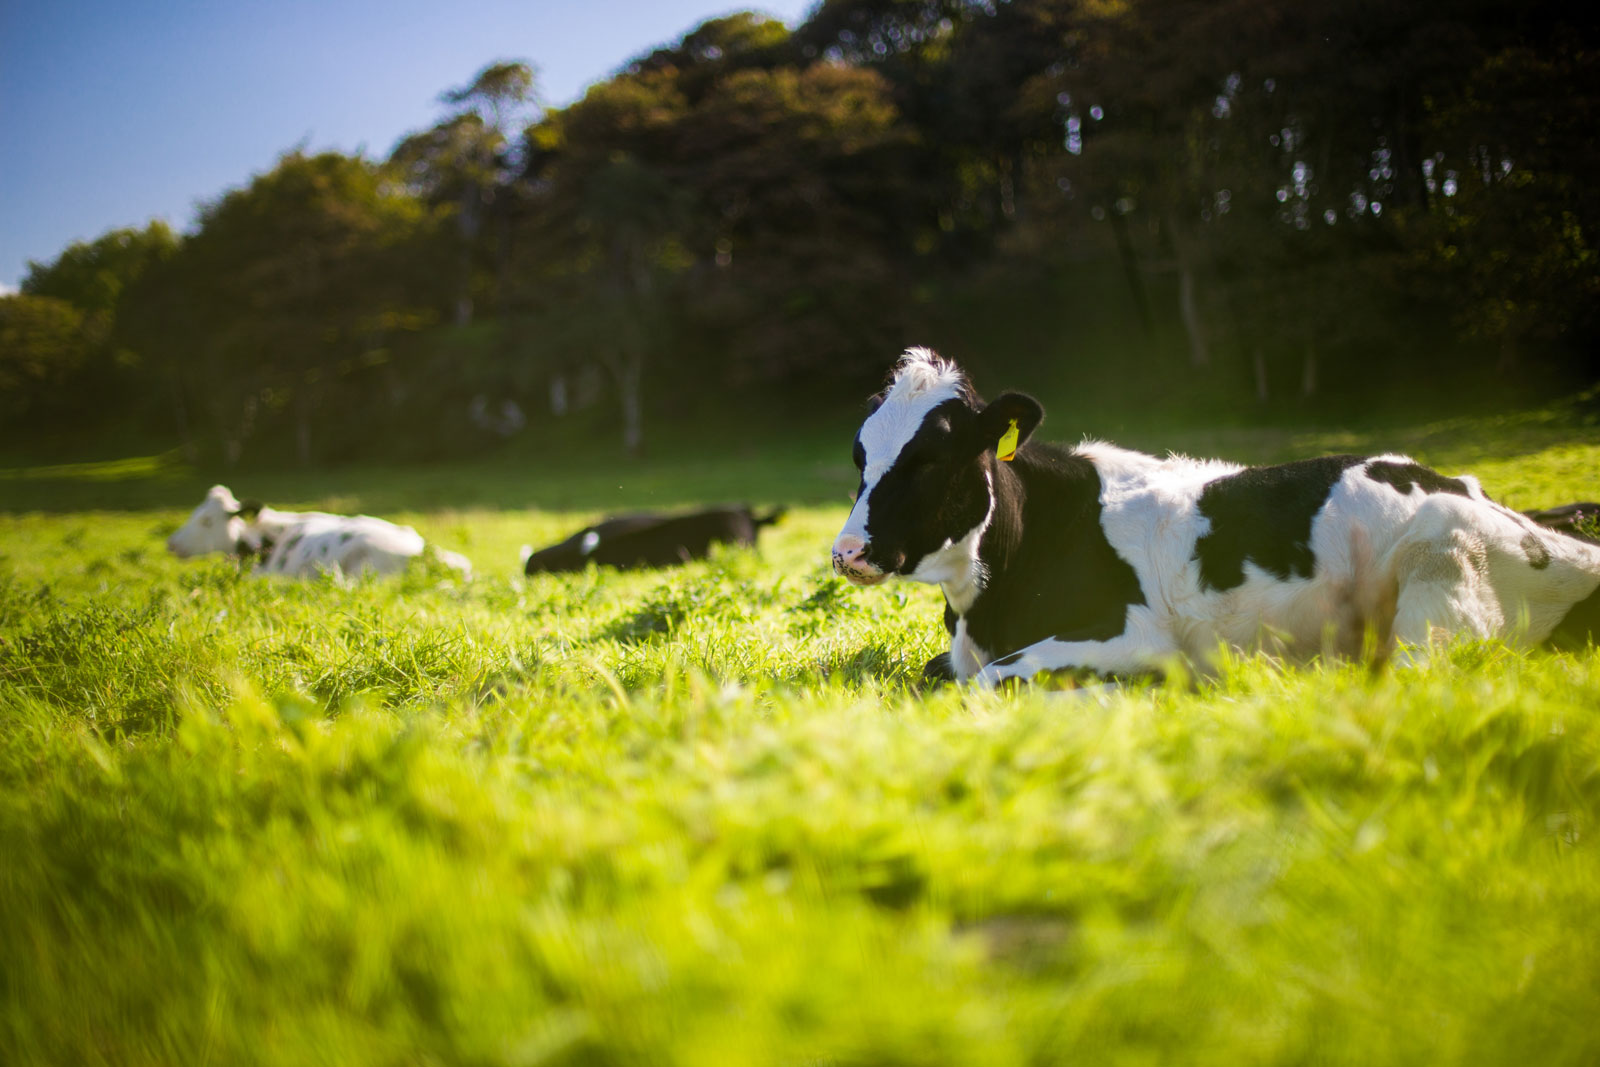 Cows | Veganism & Climate Change: How Going Vegan Can Help